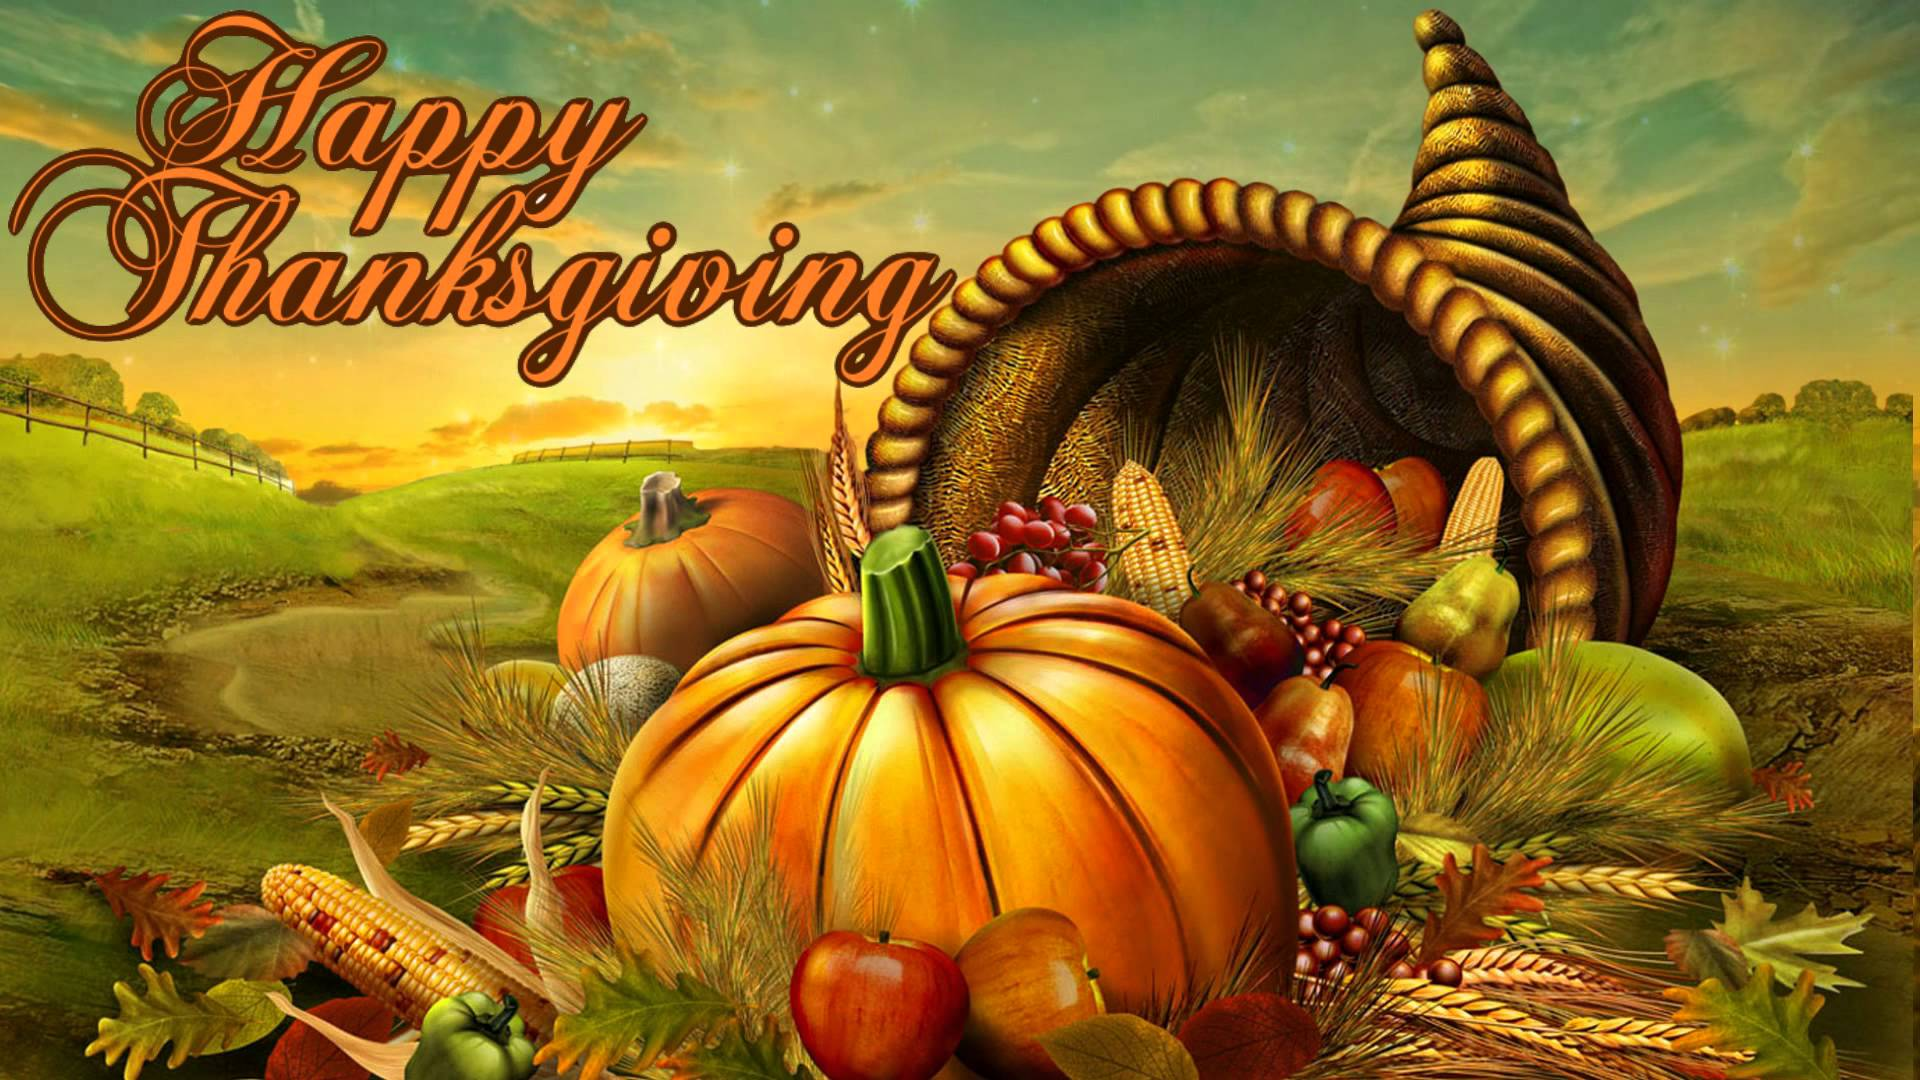 Thanksgiving Day Wishes Hd Wallpaper Download